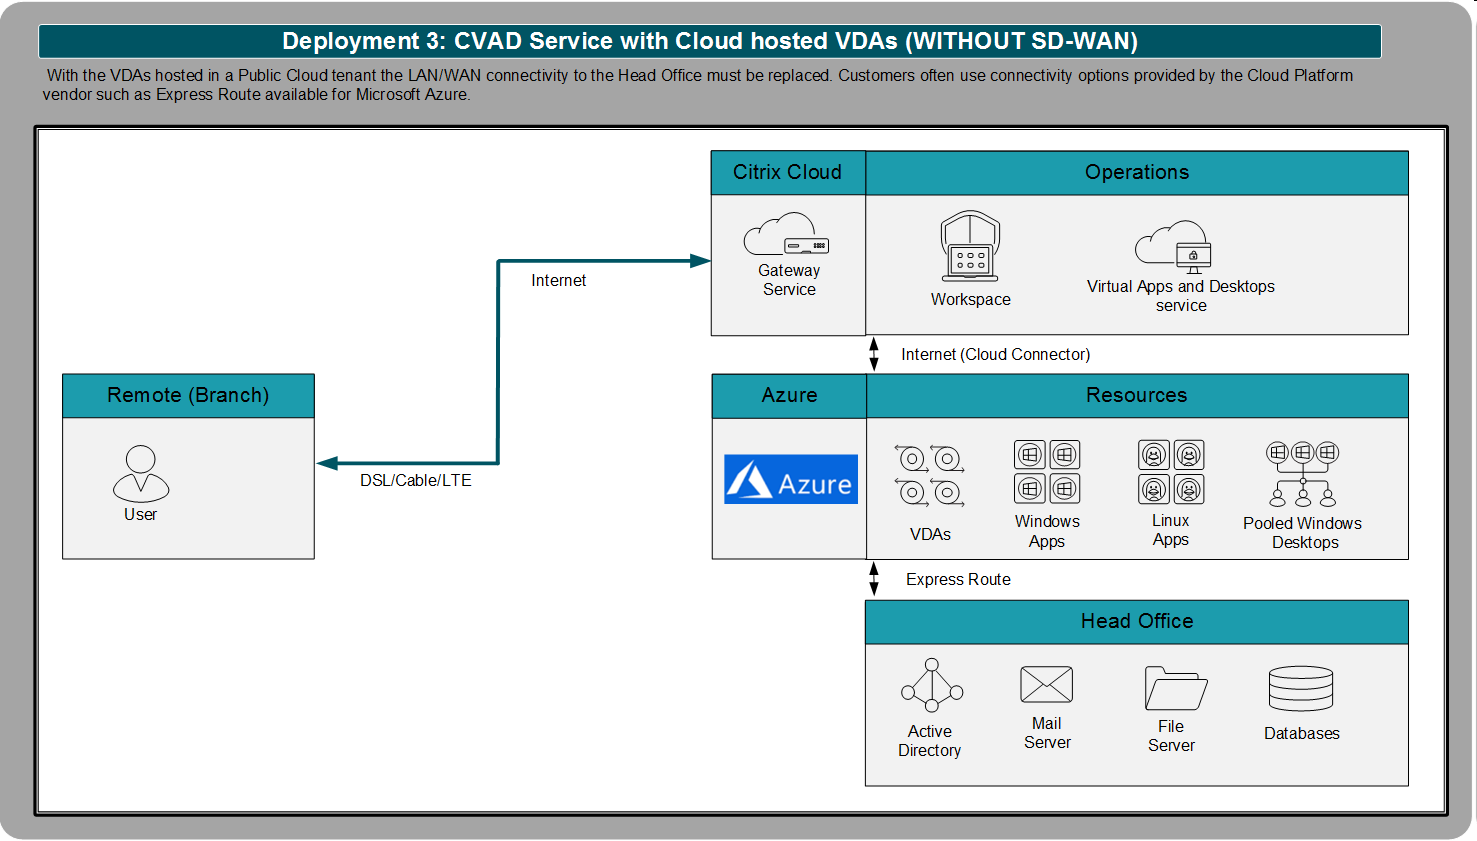 Scenarios 3 - Without SD-WAN